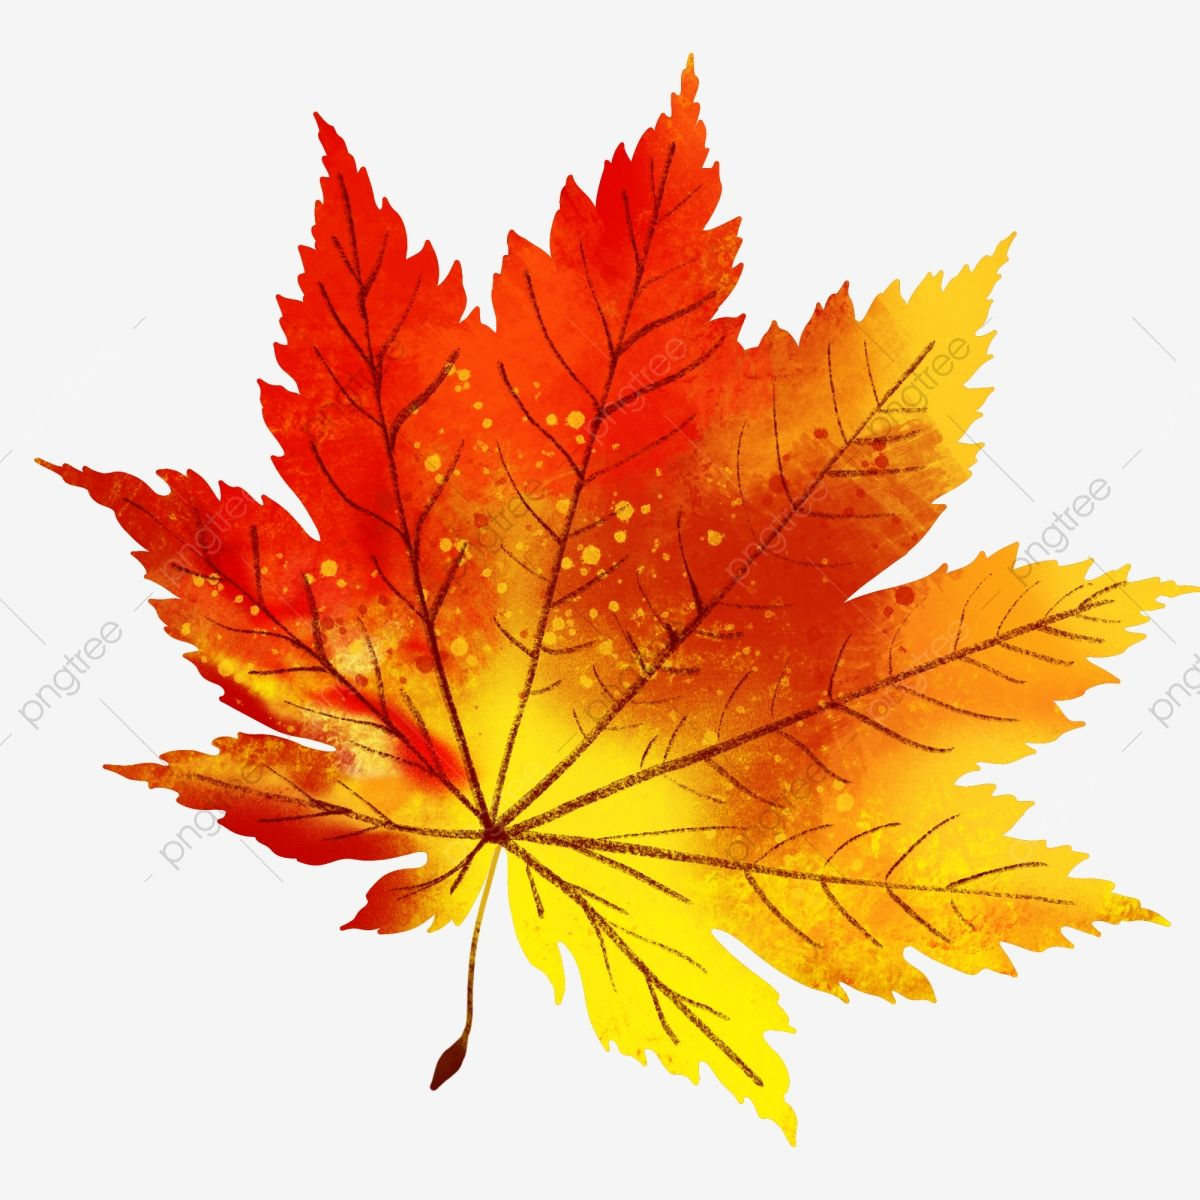 Autumn And Maple Leaves Drawn Plant Simple Nature Clipart Autumn Autumn Leaf Png Transparent Clipart Image And Psd File For Free Download Maple Leaf Drawing Leaf Drawing Fall Leaves Drawing